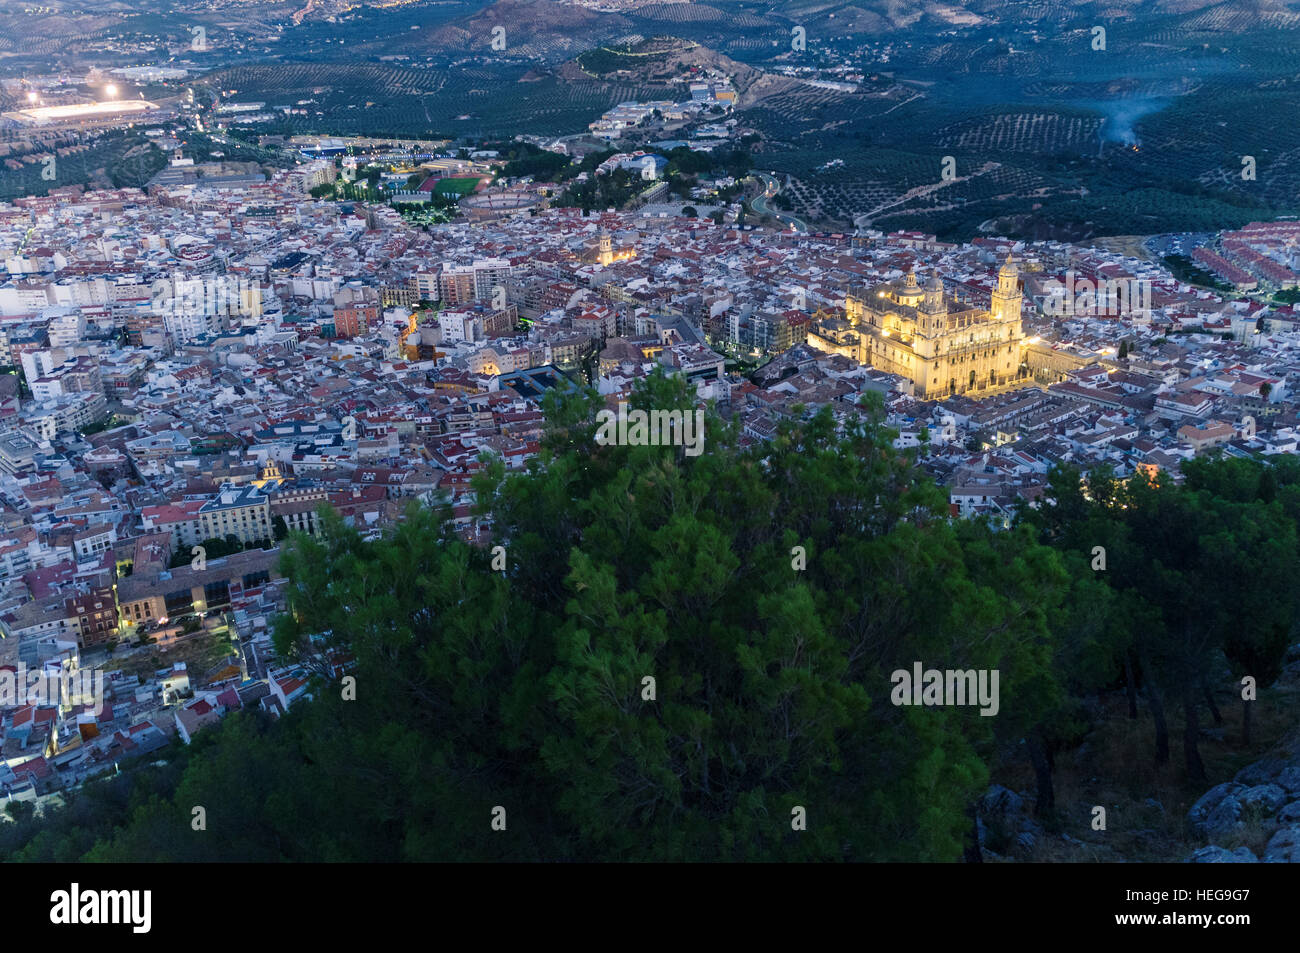 Jaen city overview at dusk with illuminated cathedral. Jaén, Andalusia, Spain - Stock Image